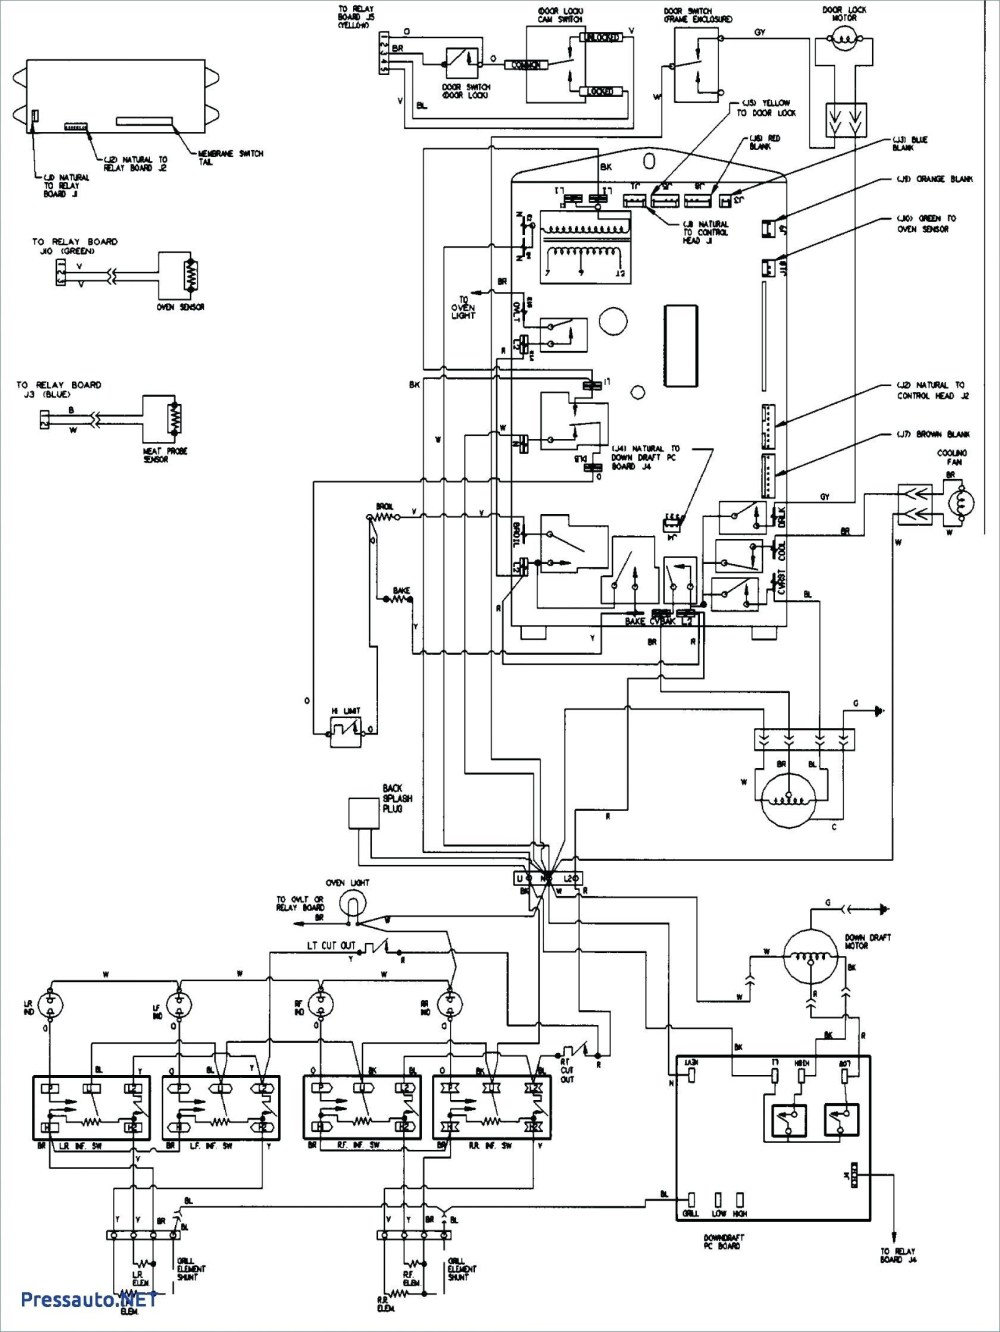 medium resolution of lennox signaturestat wiring diagram collection lennox ac thermostat wiring diagram free download wiring diagram 11